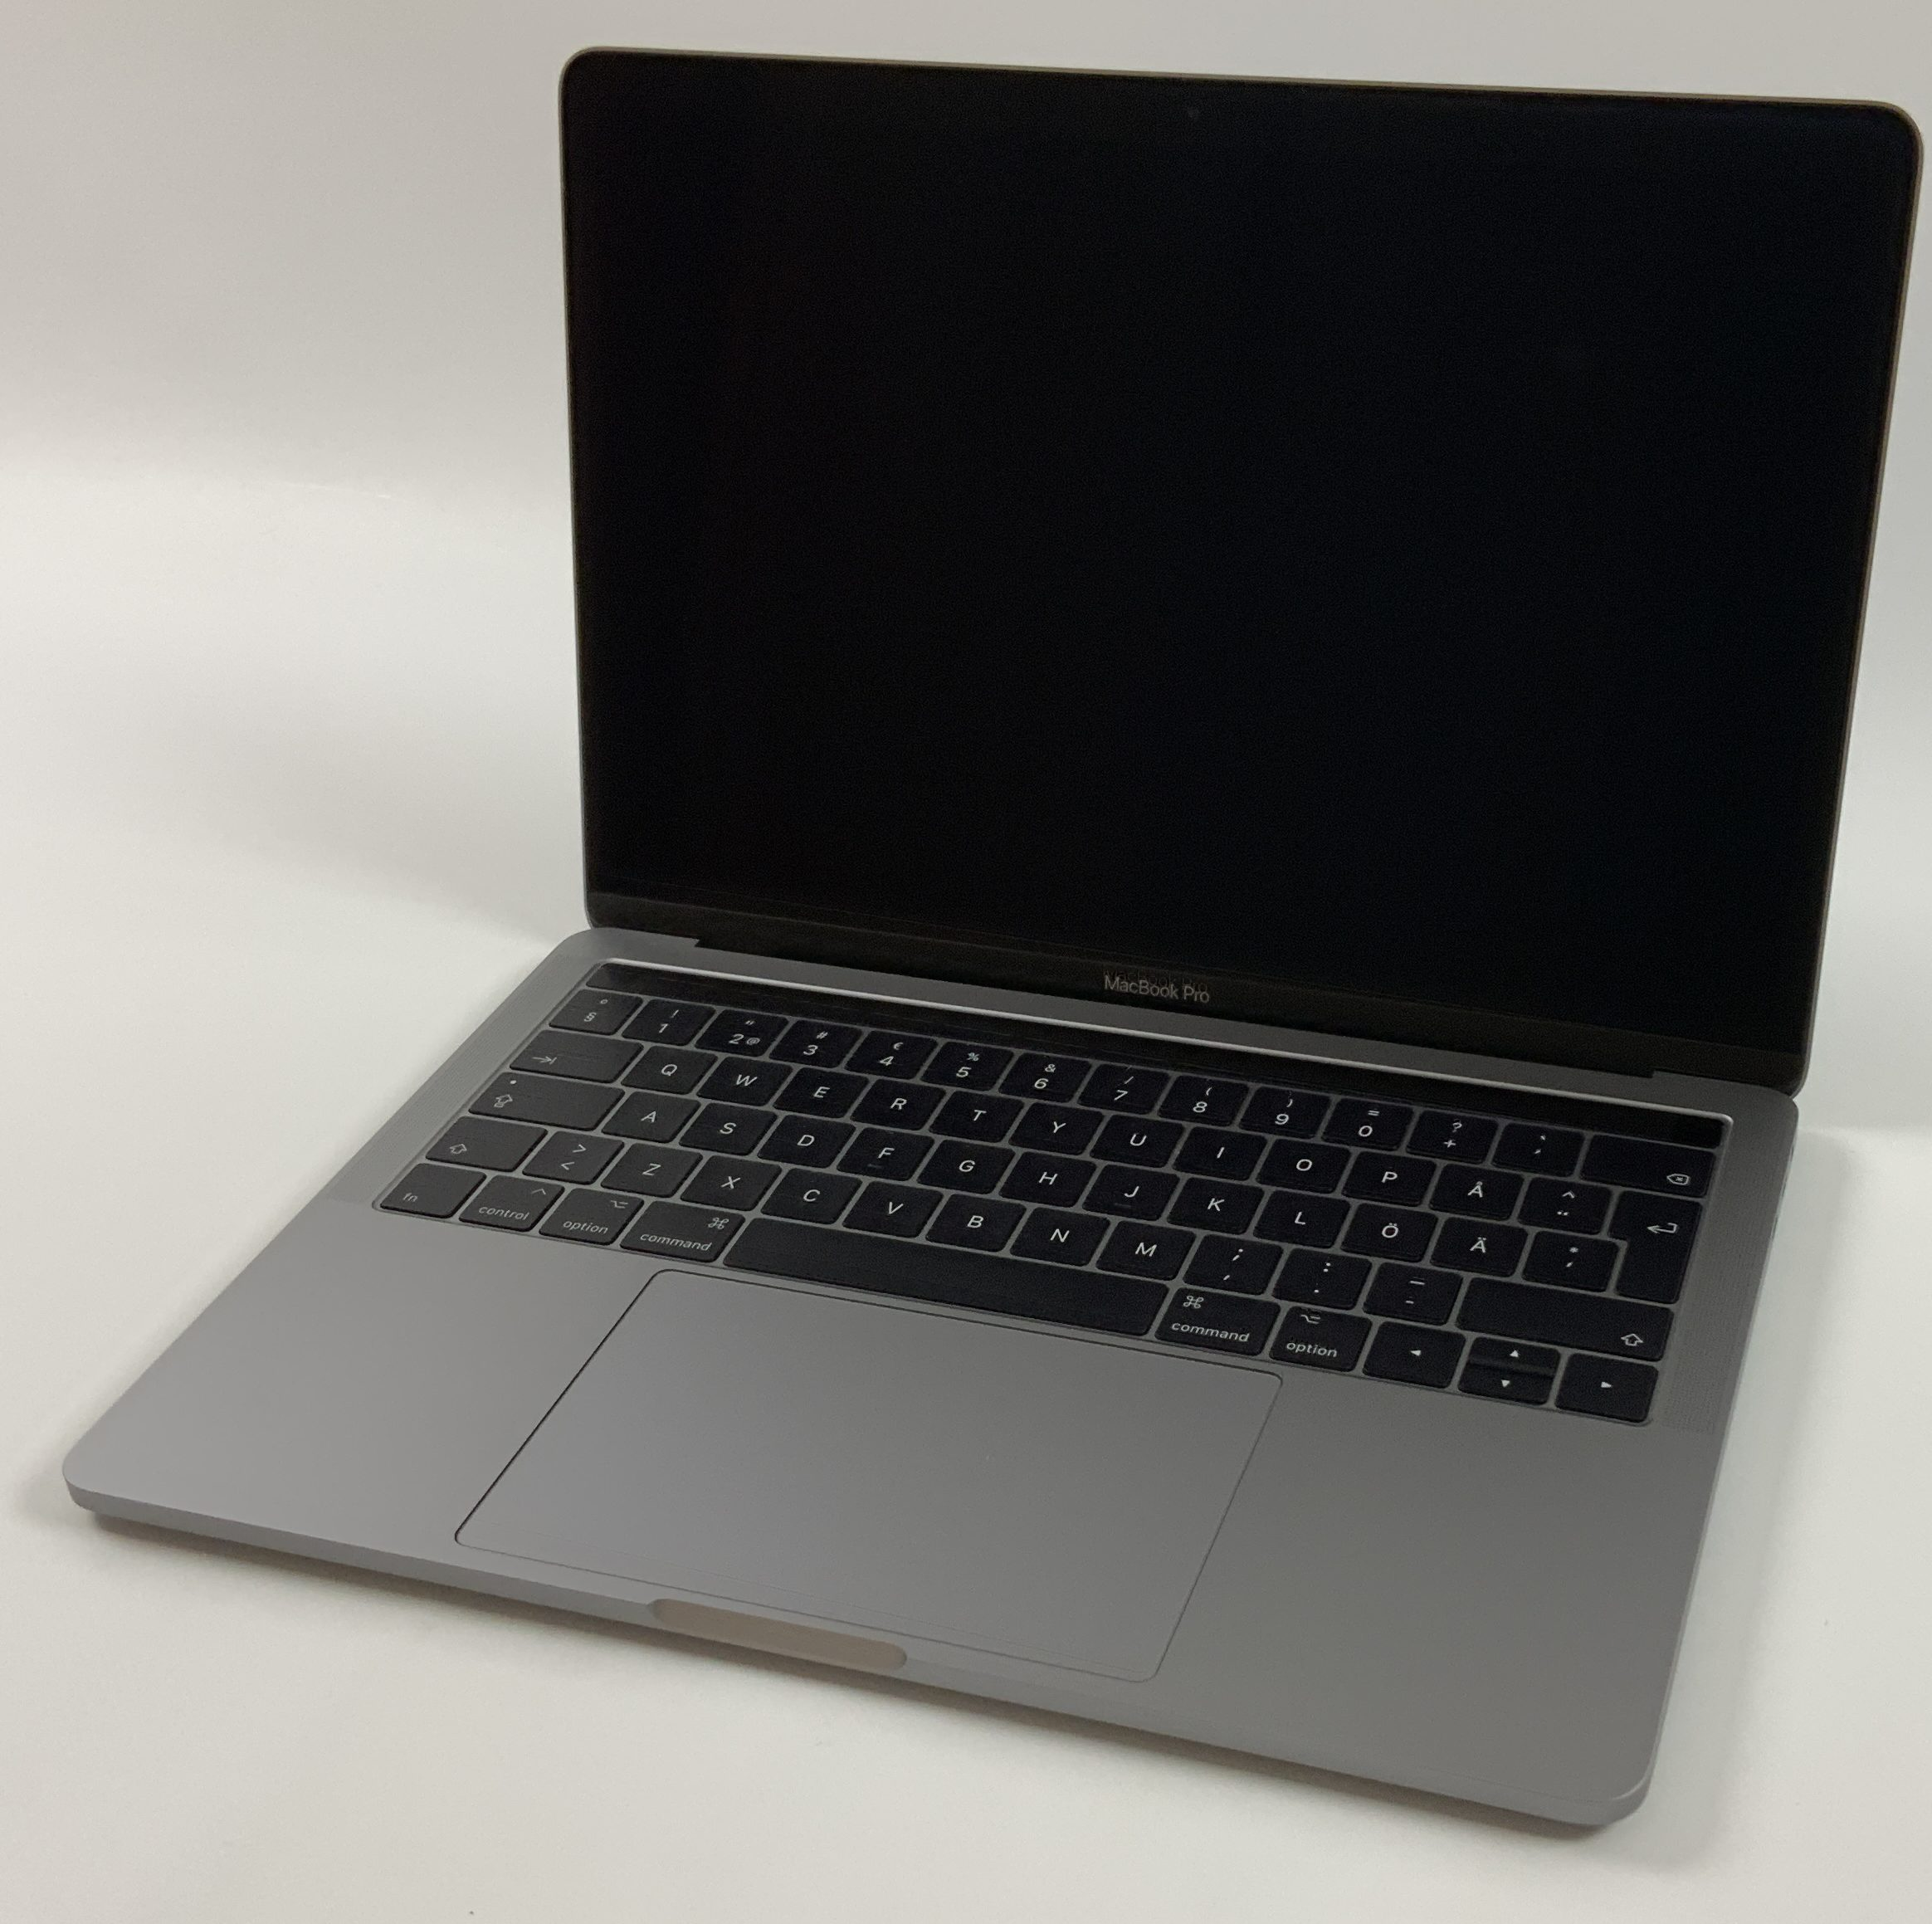 "MacBook Pro 13"" 4TBT Late 2016 (Intel Core i5 2.9 GHz 8 GB RAM 512 GB SSD), Space Gray, Intel Core i5 2.9 GHz, 8 GB RAM, 512 GB SSD, imagen 1"